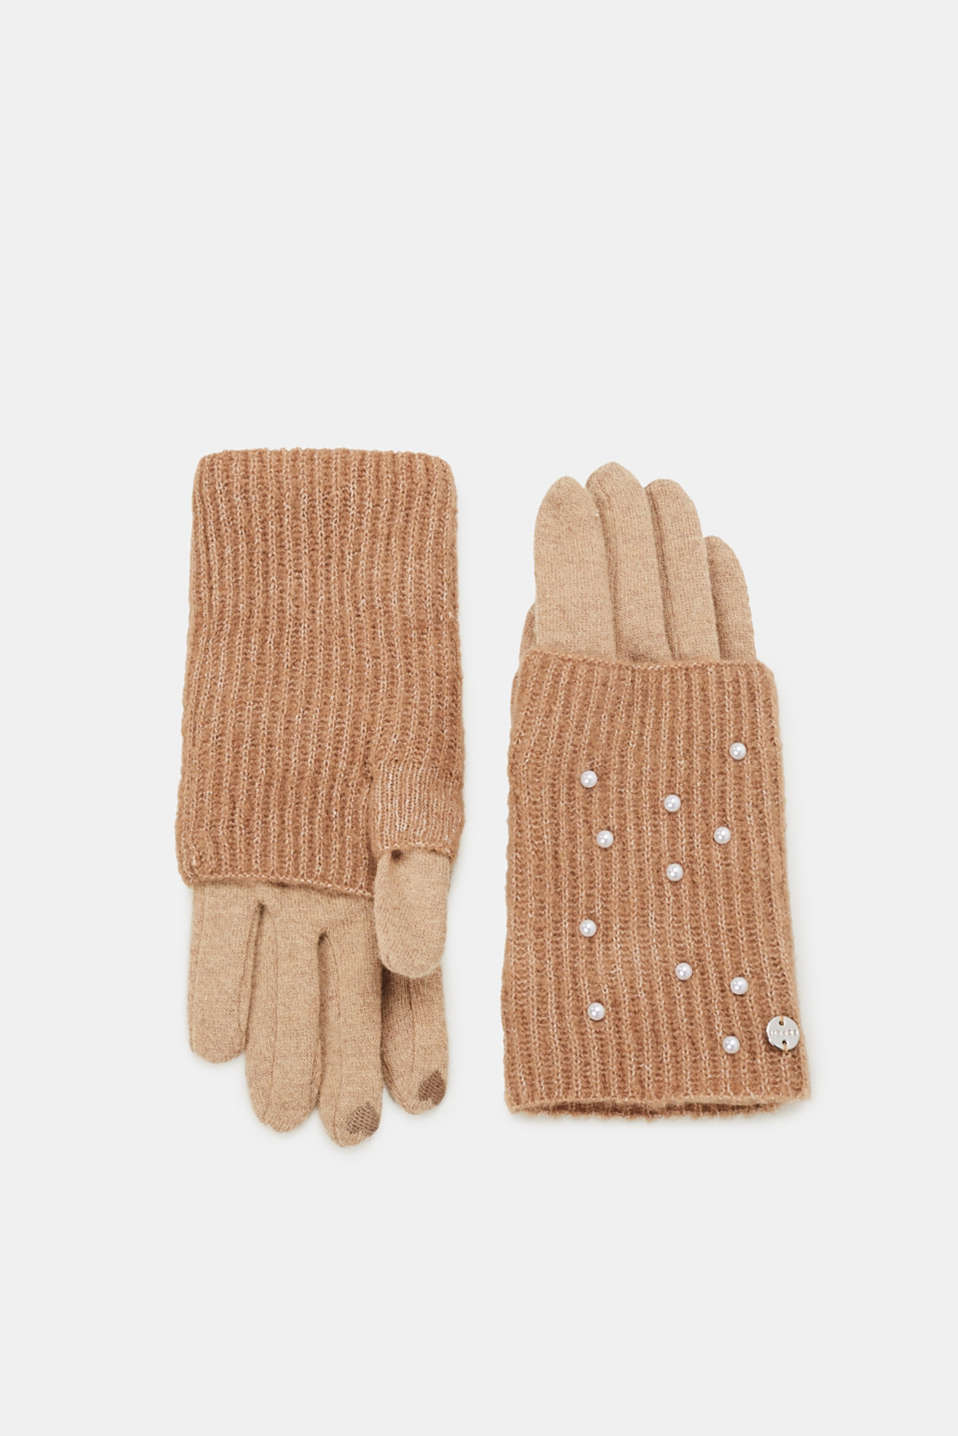 Esprit - Touchscreen gloves with beads